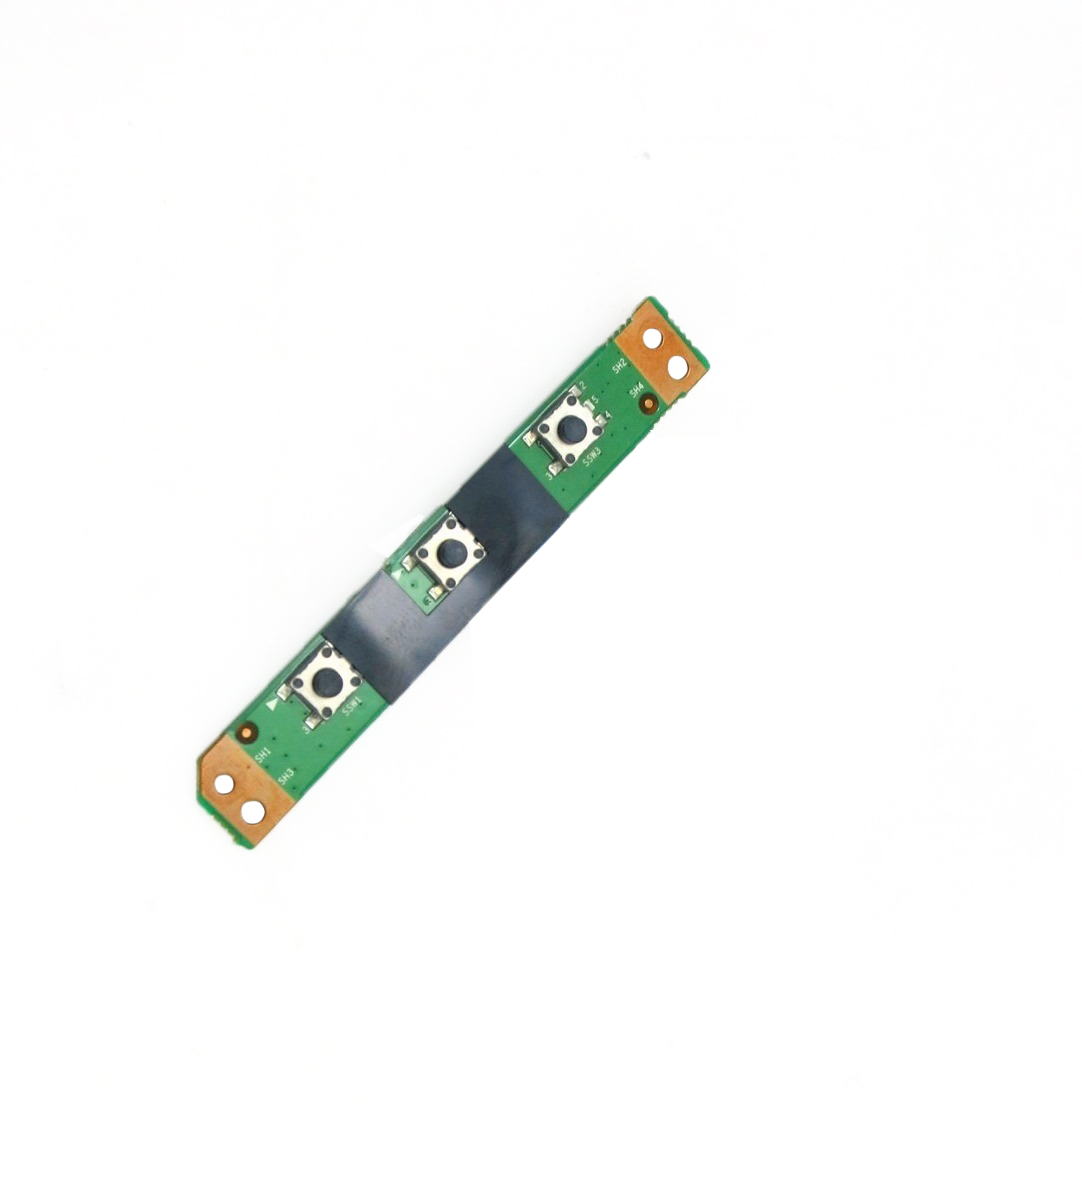 Placa Conector Botões 35G5R4000-20 Notebook Sti Is 1412